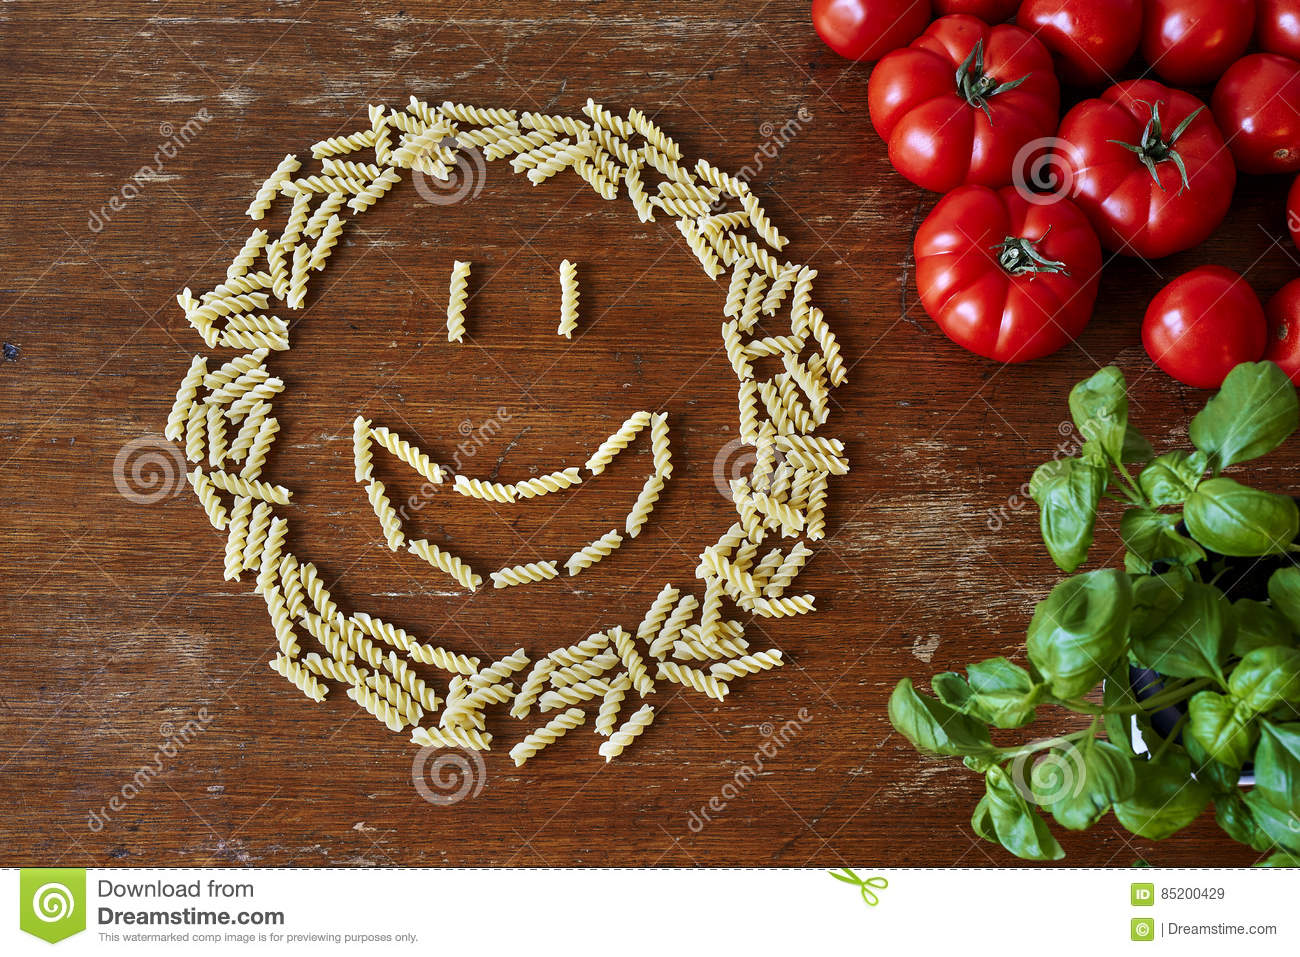 Smiley Face Formed Out Of Pasta Stock Image - Image of food, italian